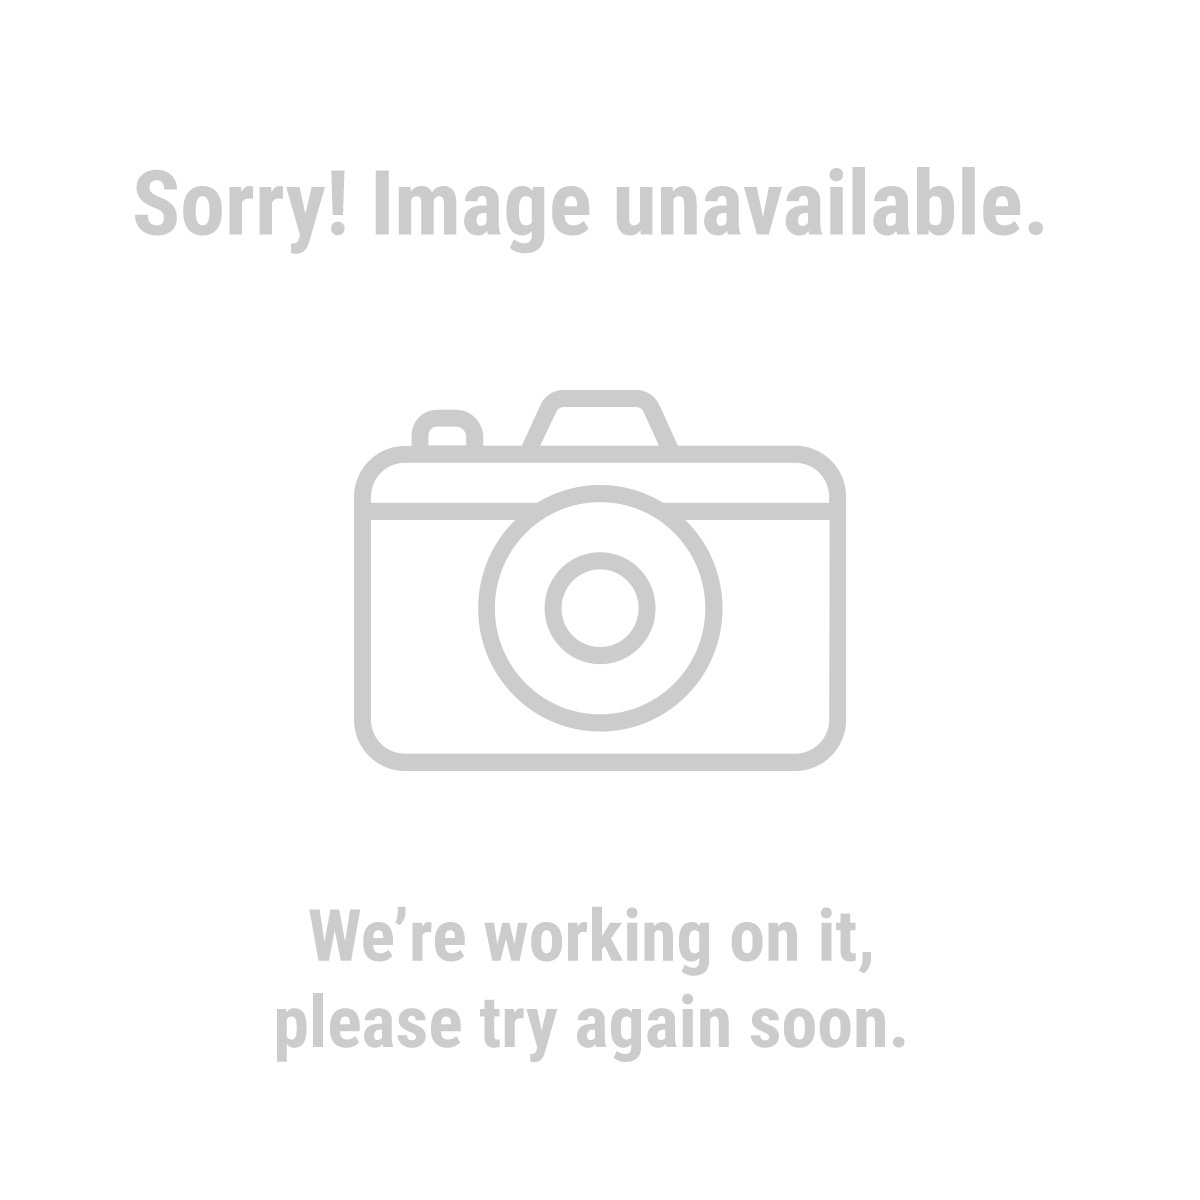 Haul-Master 69326 Solid Rubber Wheel Chock